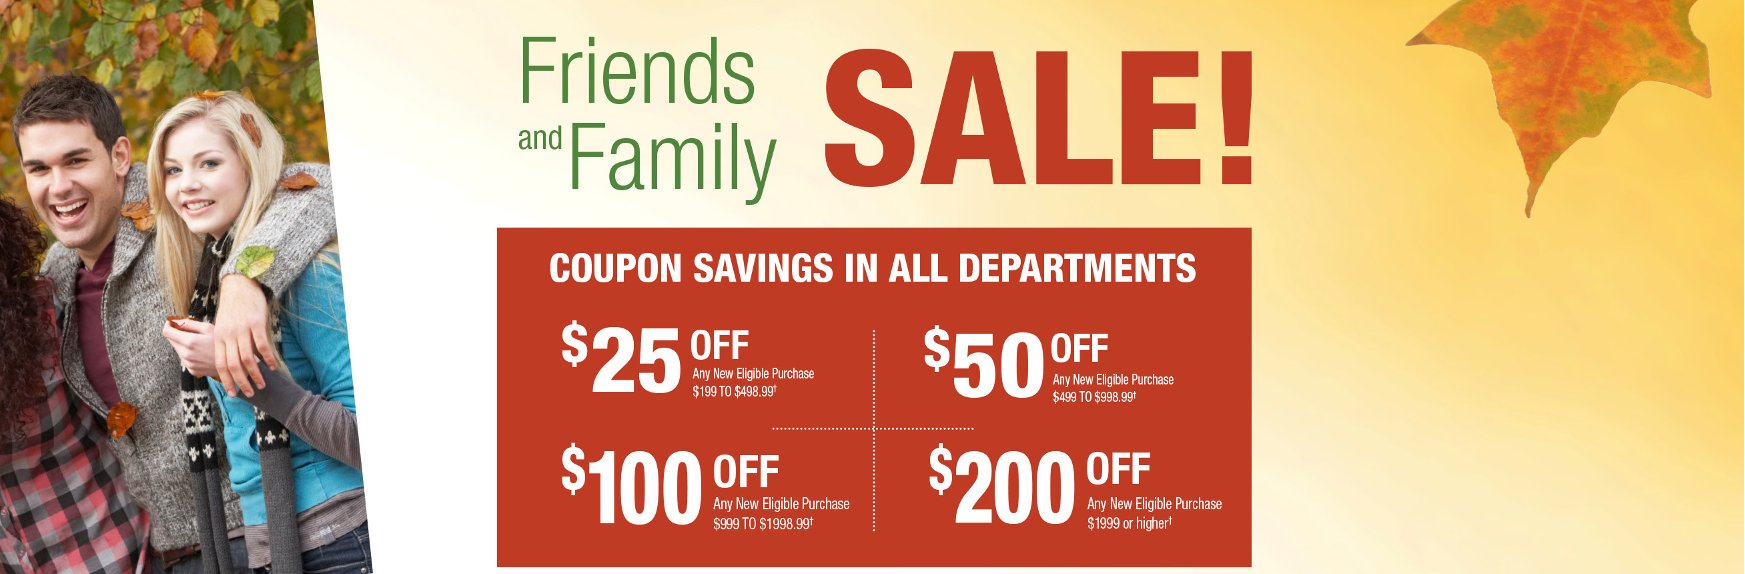 Coupon savings in all departments during the Friends and Family Sale at RC Willey